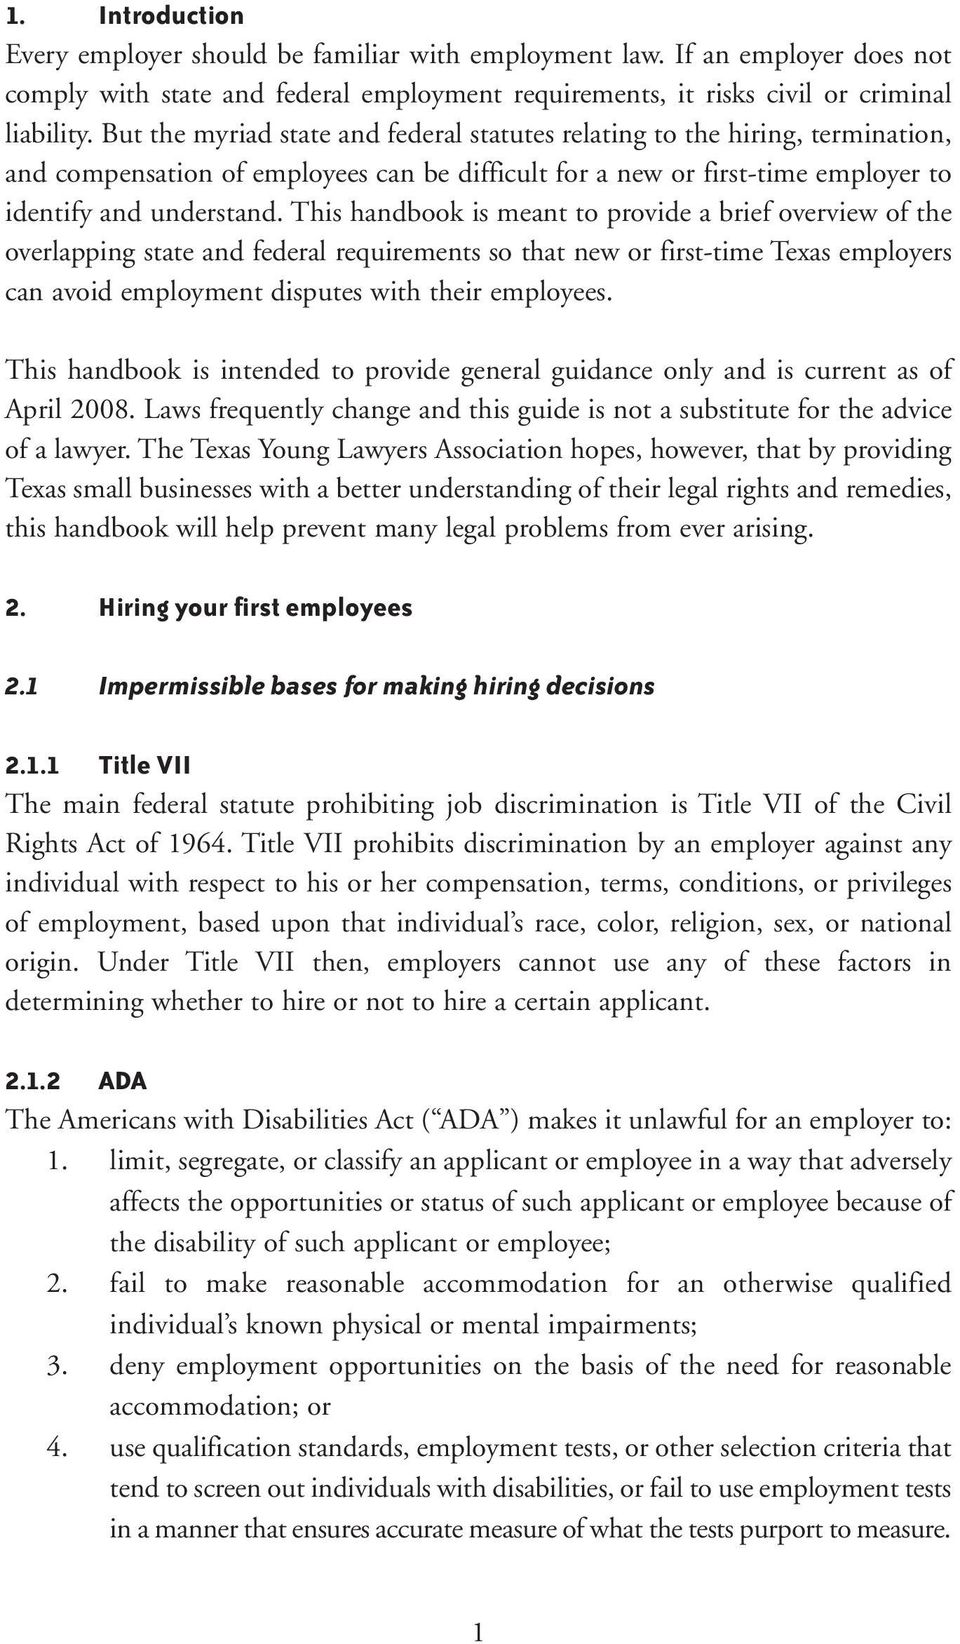 This handbook is meant to provide a brief overview of the overlapping state and federal requirements so that new or first-time Texas employers can avoid employment disputes with their employees.